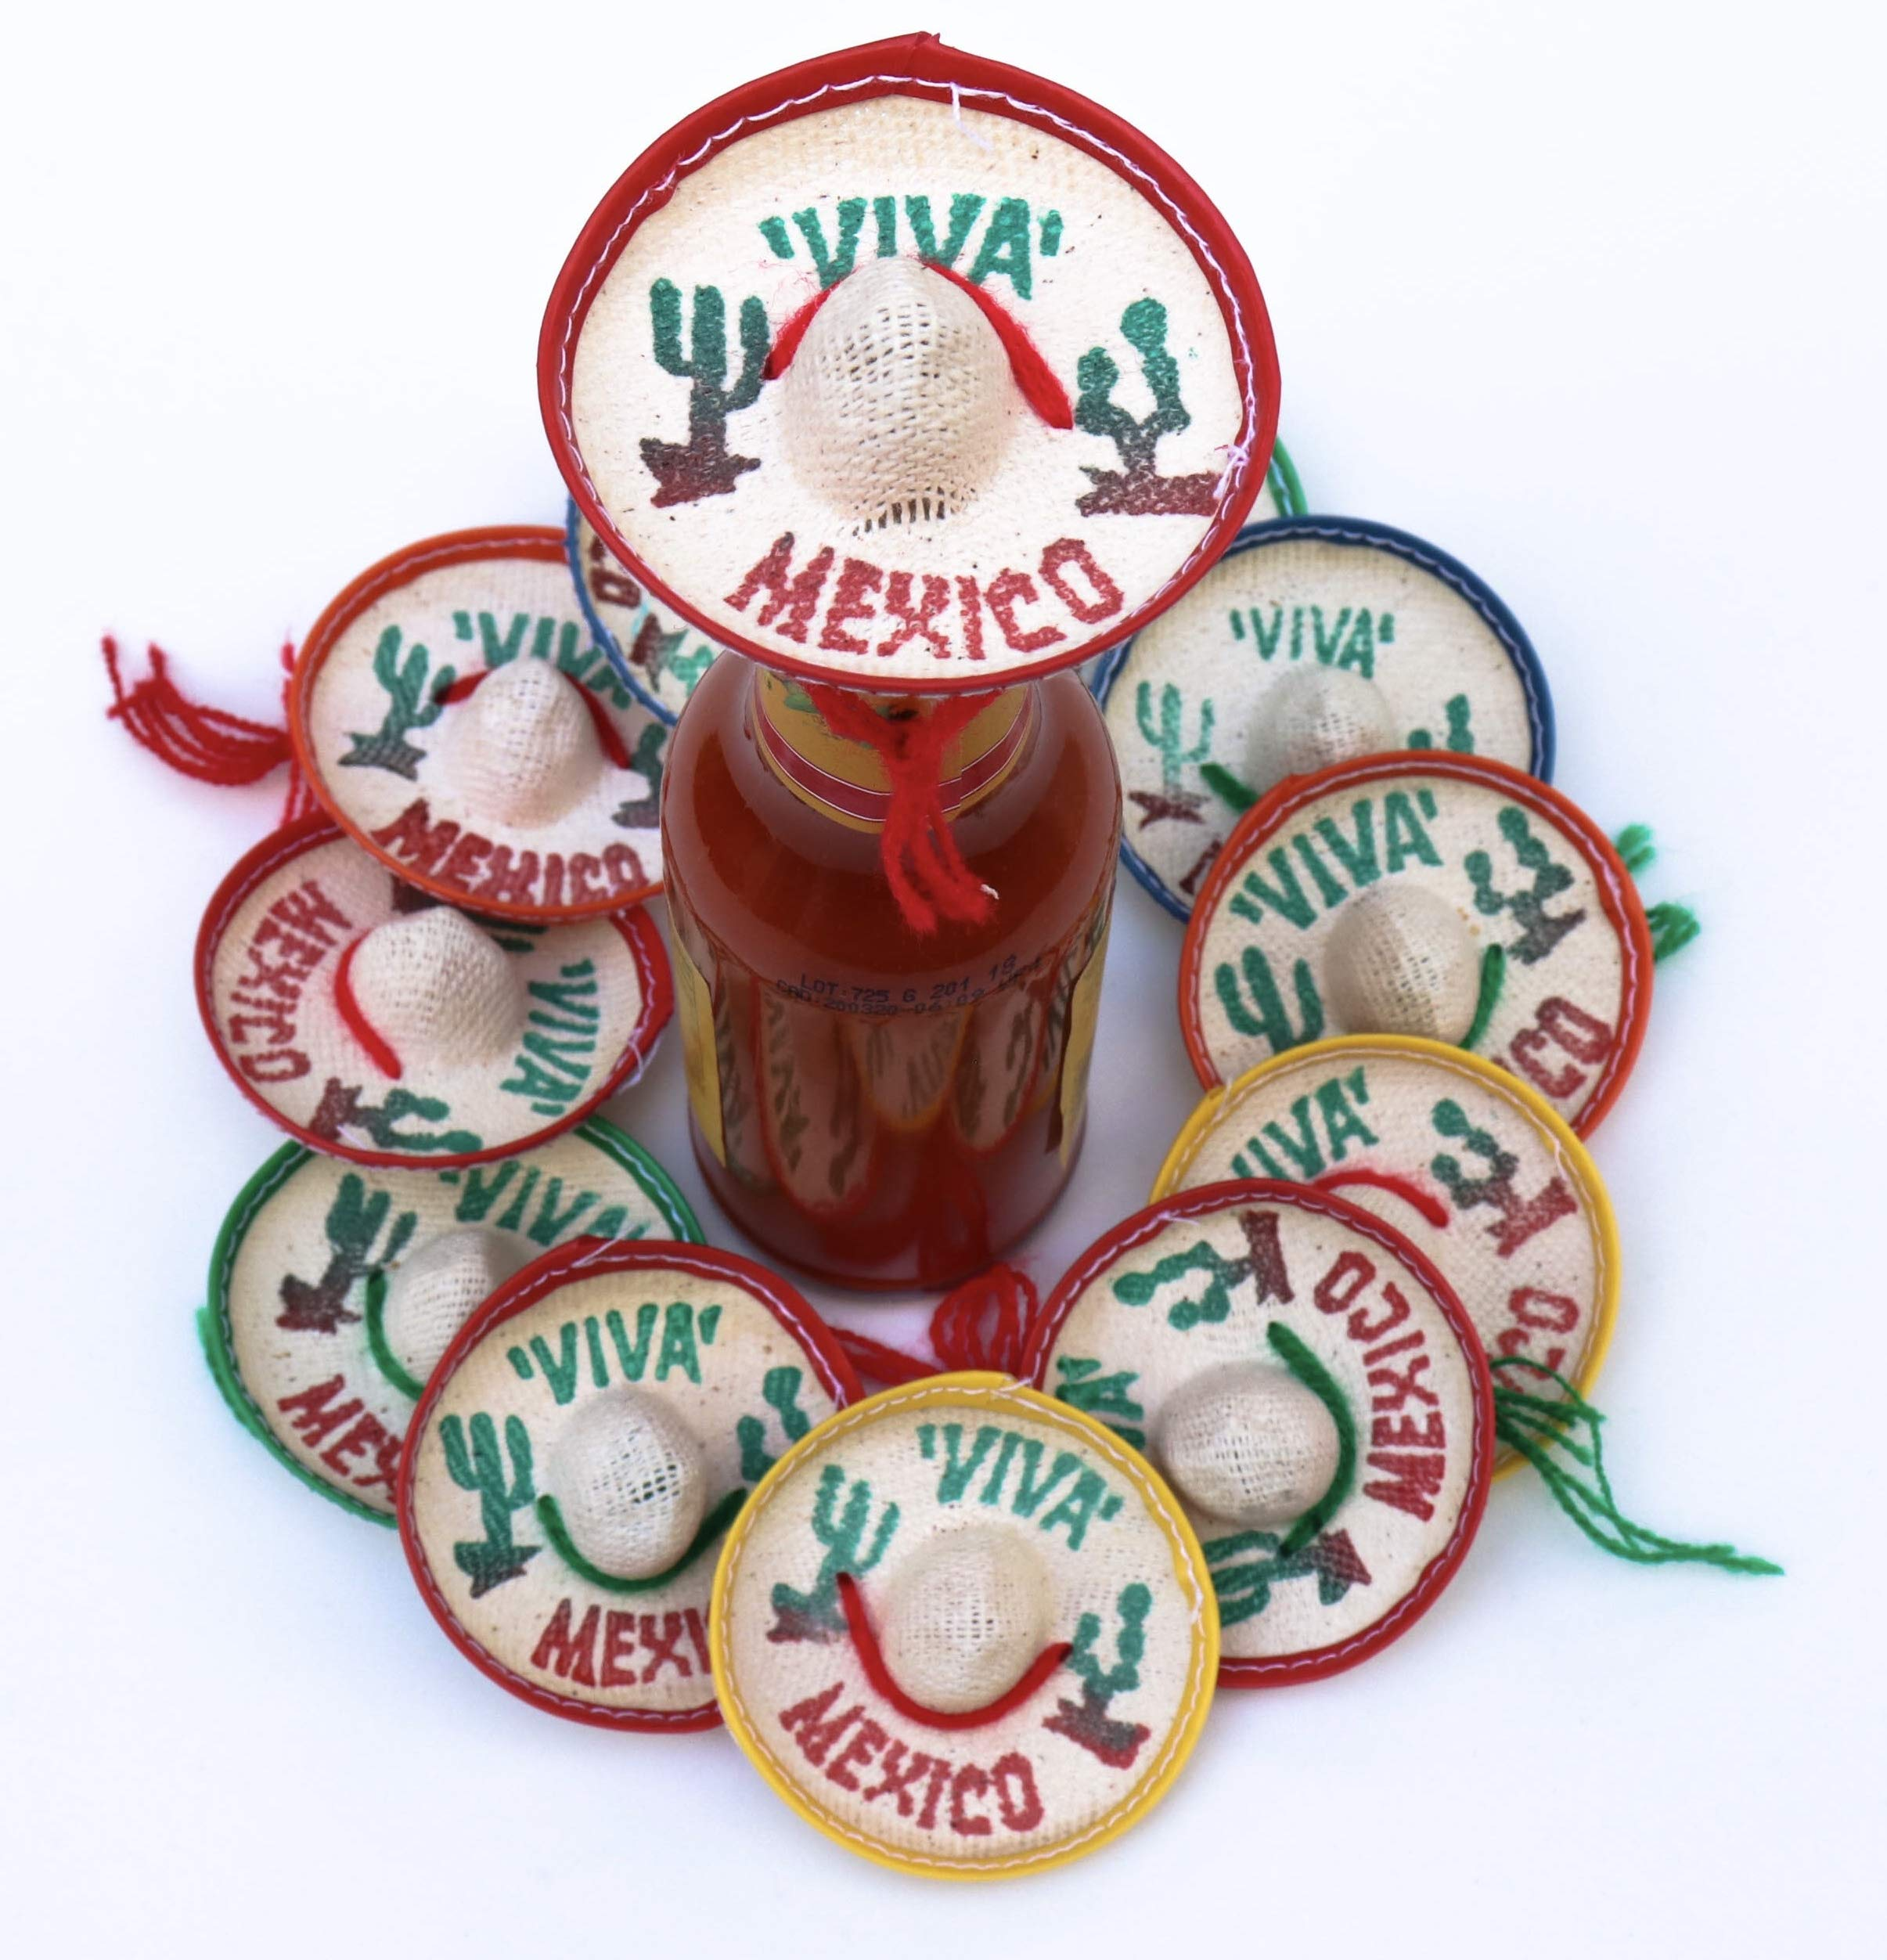 861b99128 One Dozen Pk Mexico Party Favors - Tiny Sombrero Hats Mini for bottles  Mexican decorations Viva hat mexicanos for Fiesta Straw  decoraciones-cupcake ...